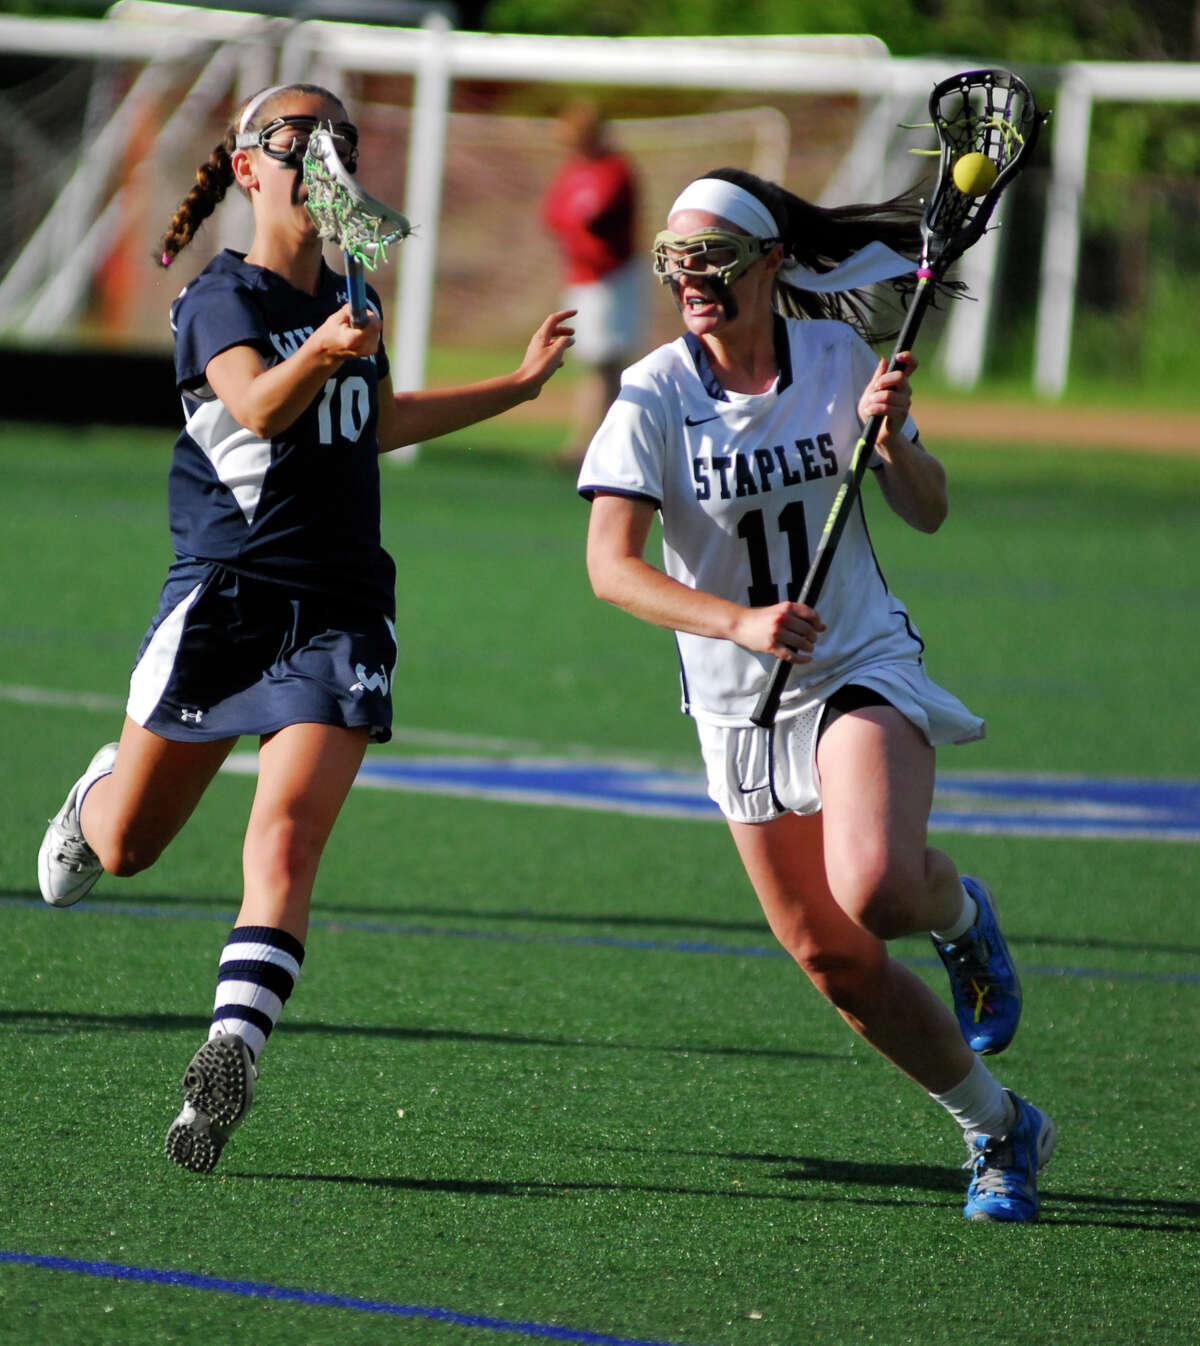 Staples' Colleen Bannon, right, dodges Wilton's Lilla Seymour during a game on Friday. Staples fell 12-10 to the Warriors in the FCIAC quarterfinals.